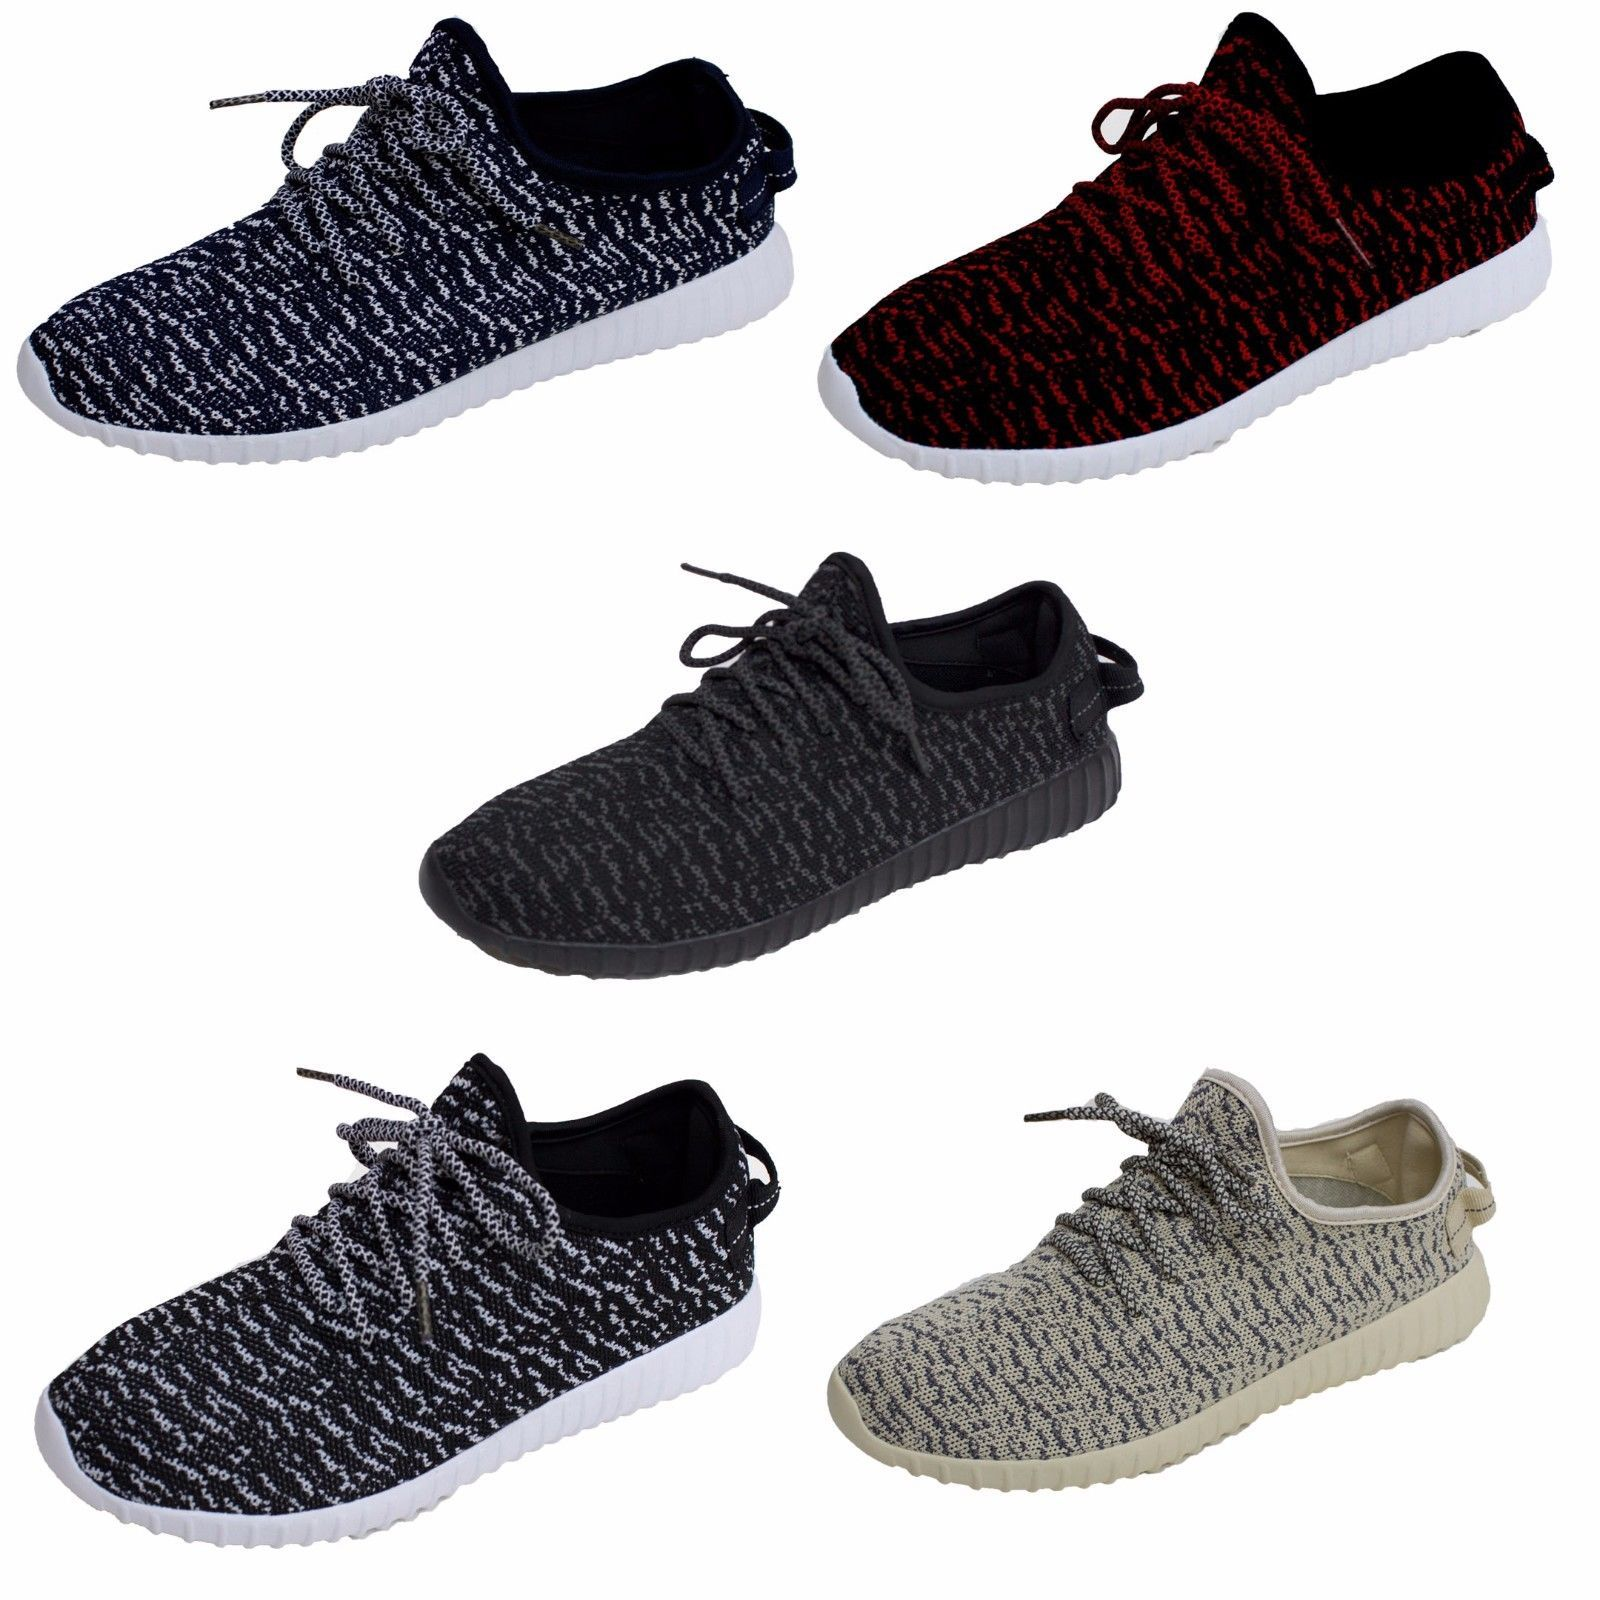 b6623379fee8 New Men fashion Running Breathable Sports Athletic Sneakers Shoes size 5.0  up